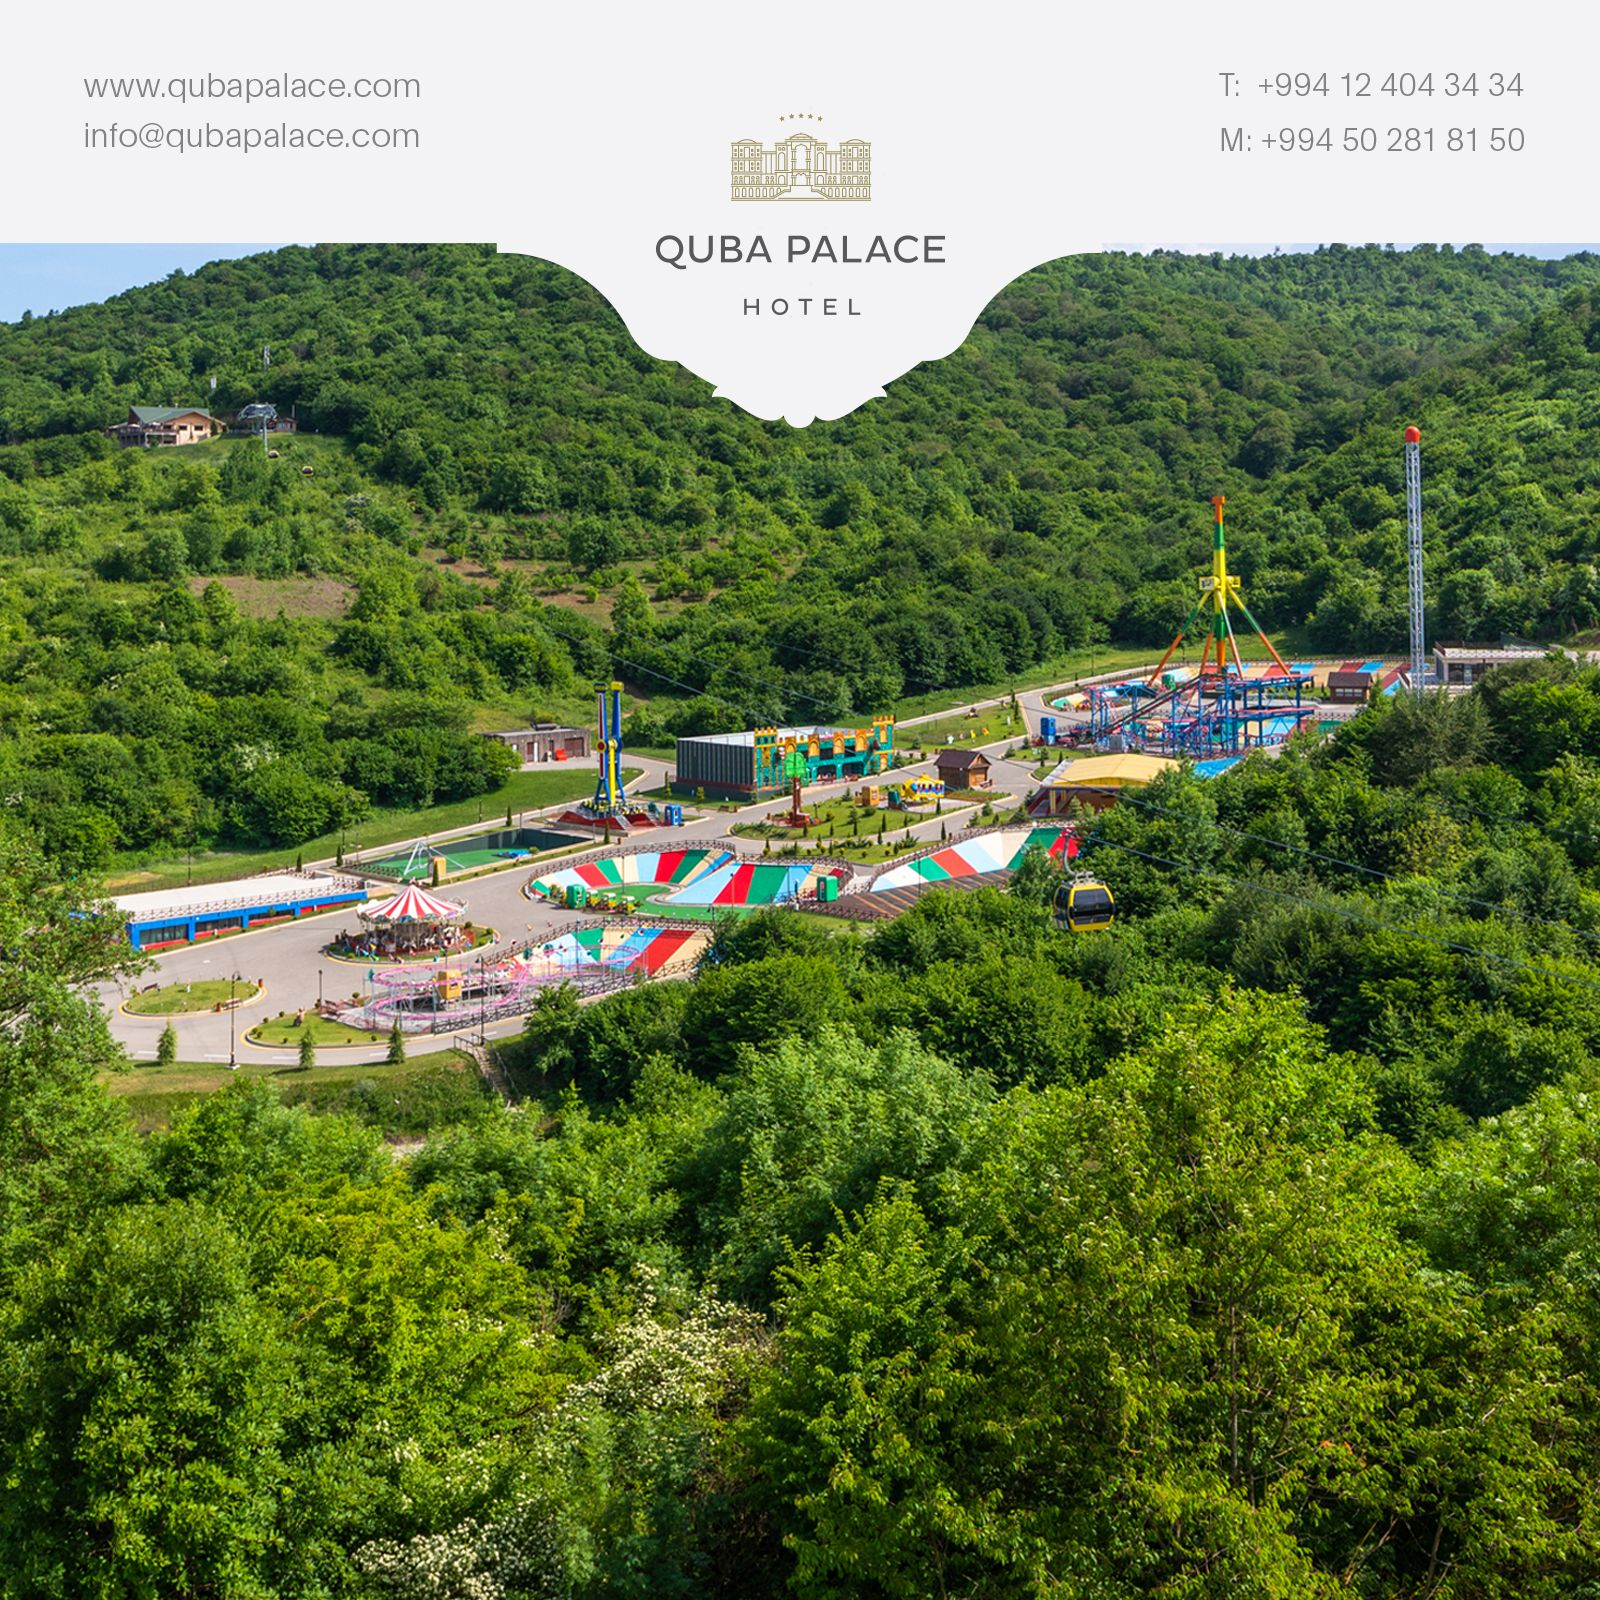 Quba Planet Is An Indispensable Place With 12 Types Of Carousel In Greenery For Those Who Want To Have Funny Time Hotel Funny Times Family Fun